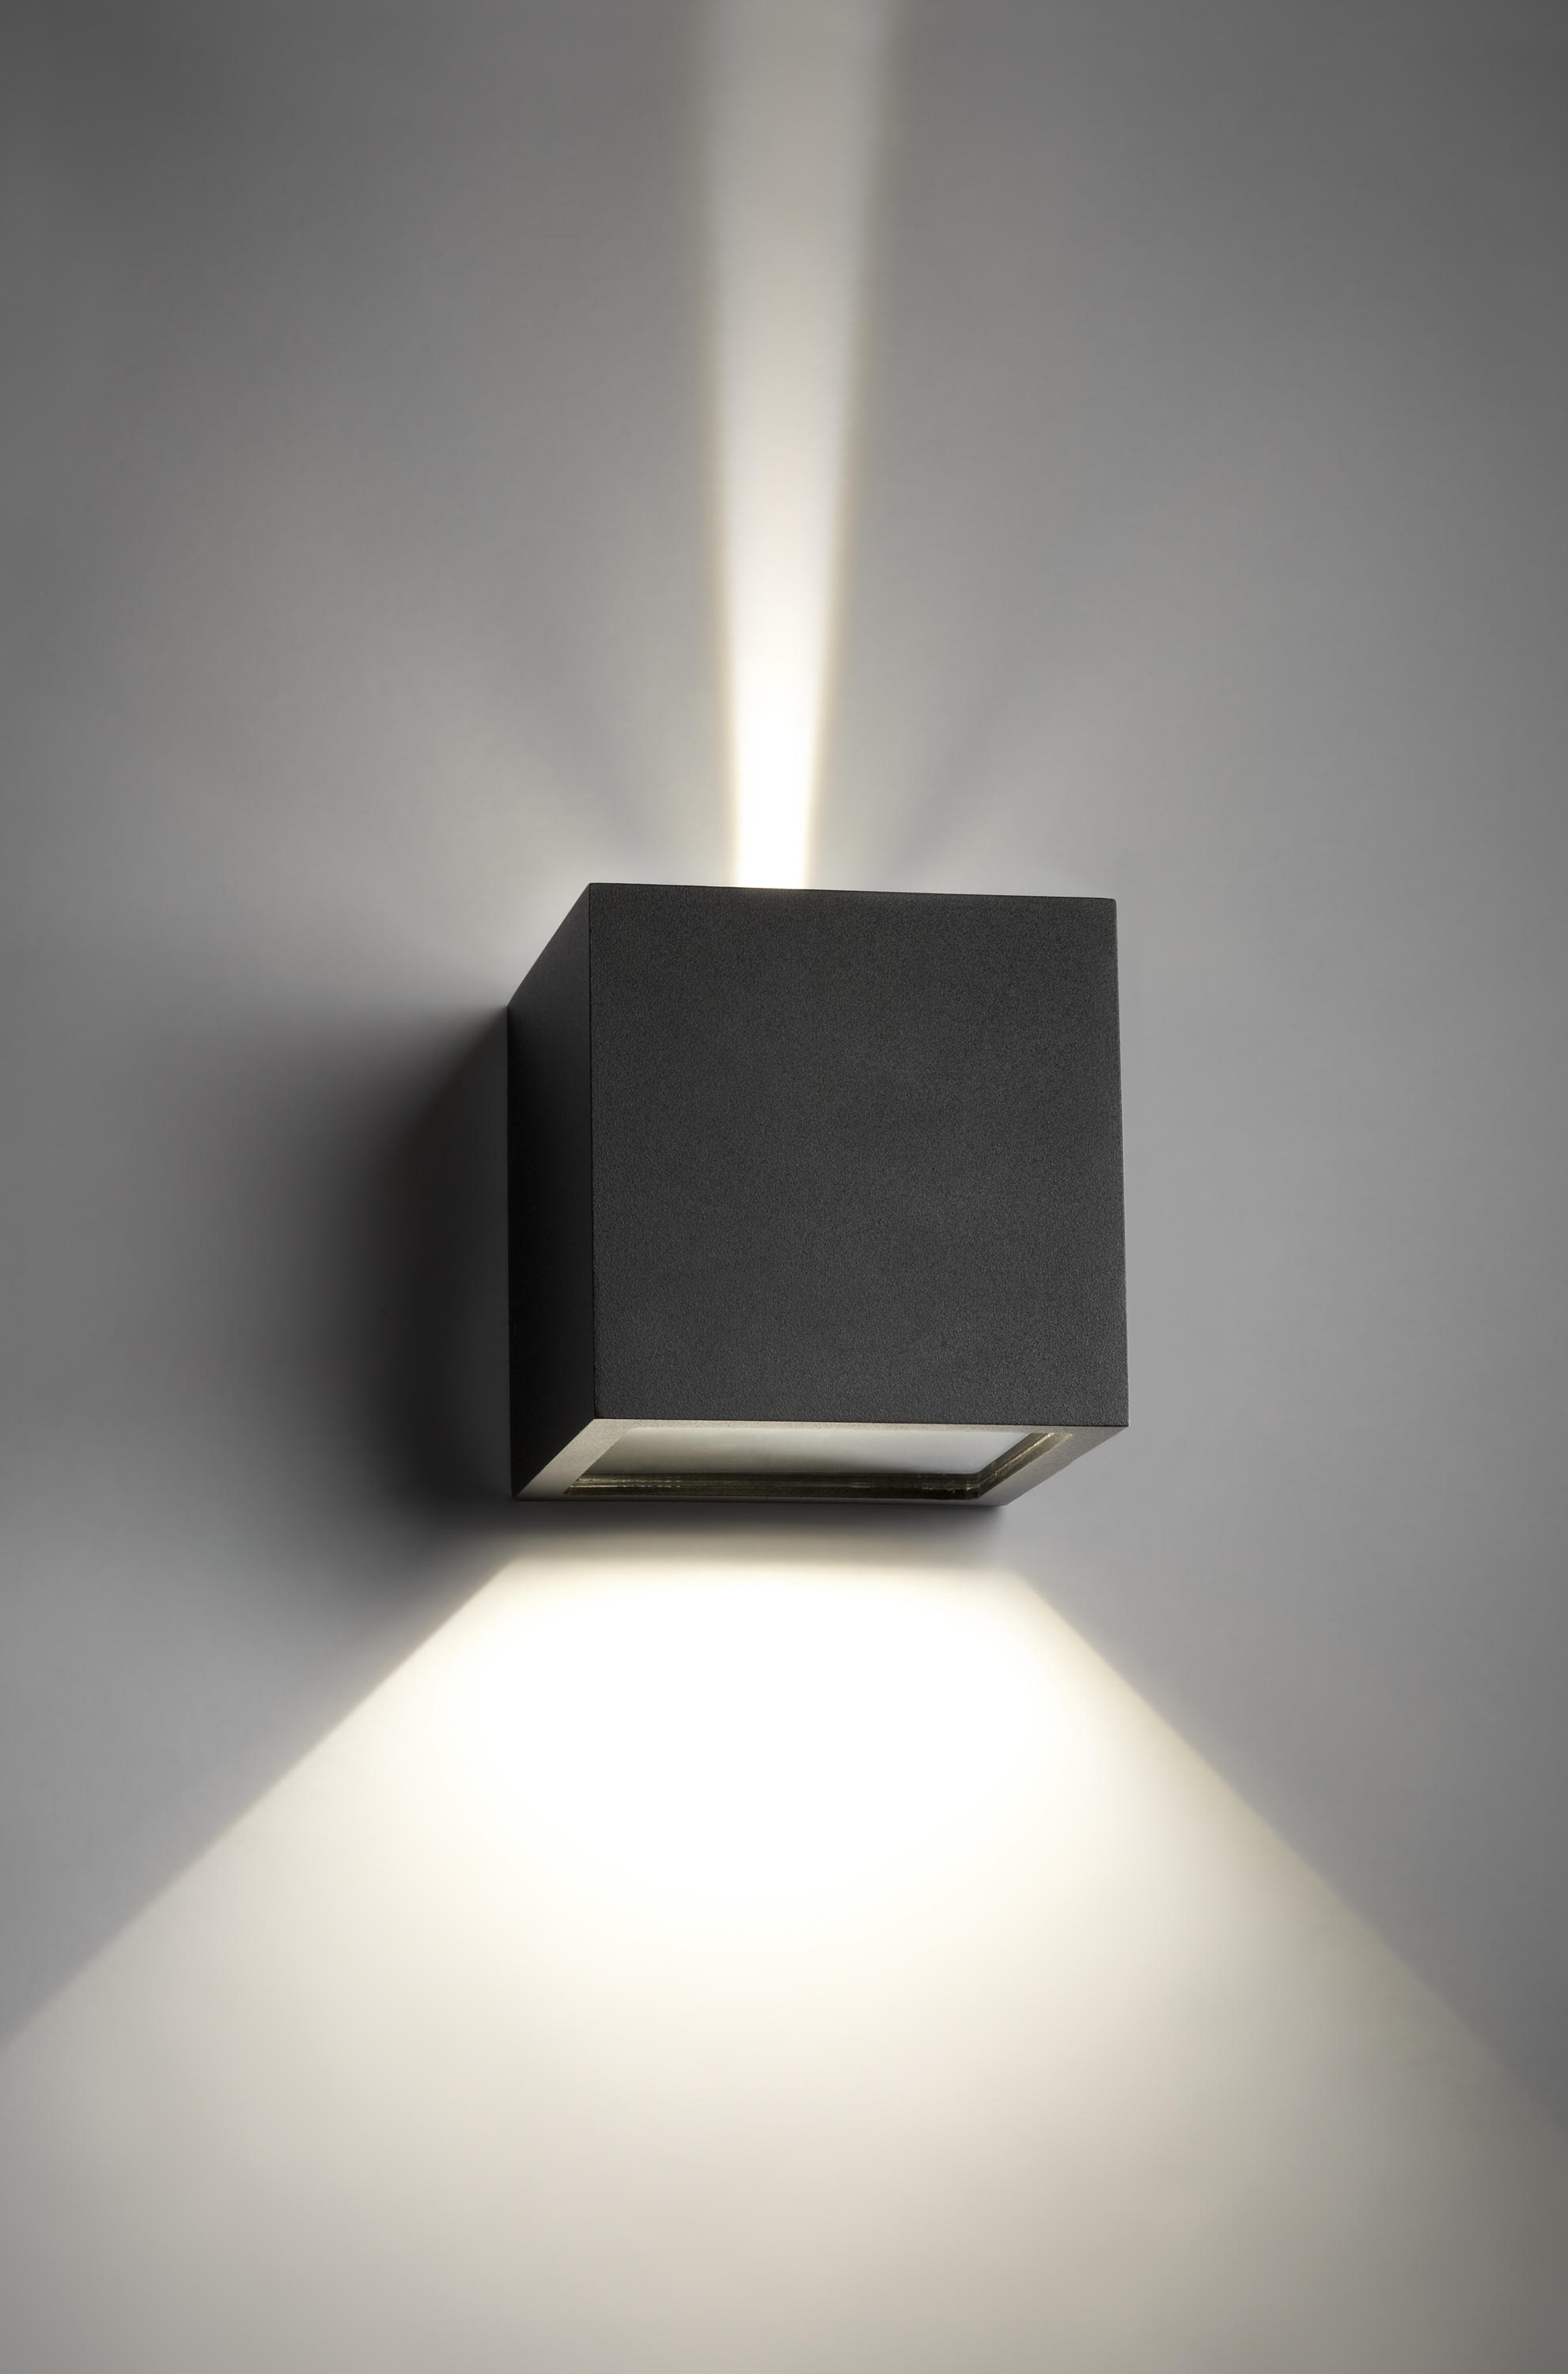 Cube led wall lights from light point architonic cube led by light point wall lights aloadofball Images